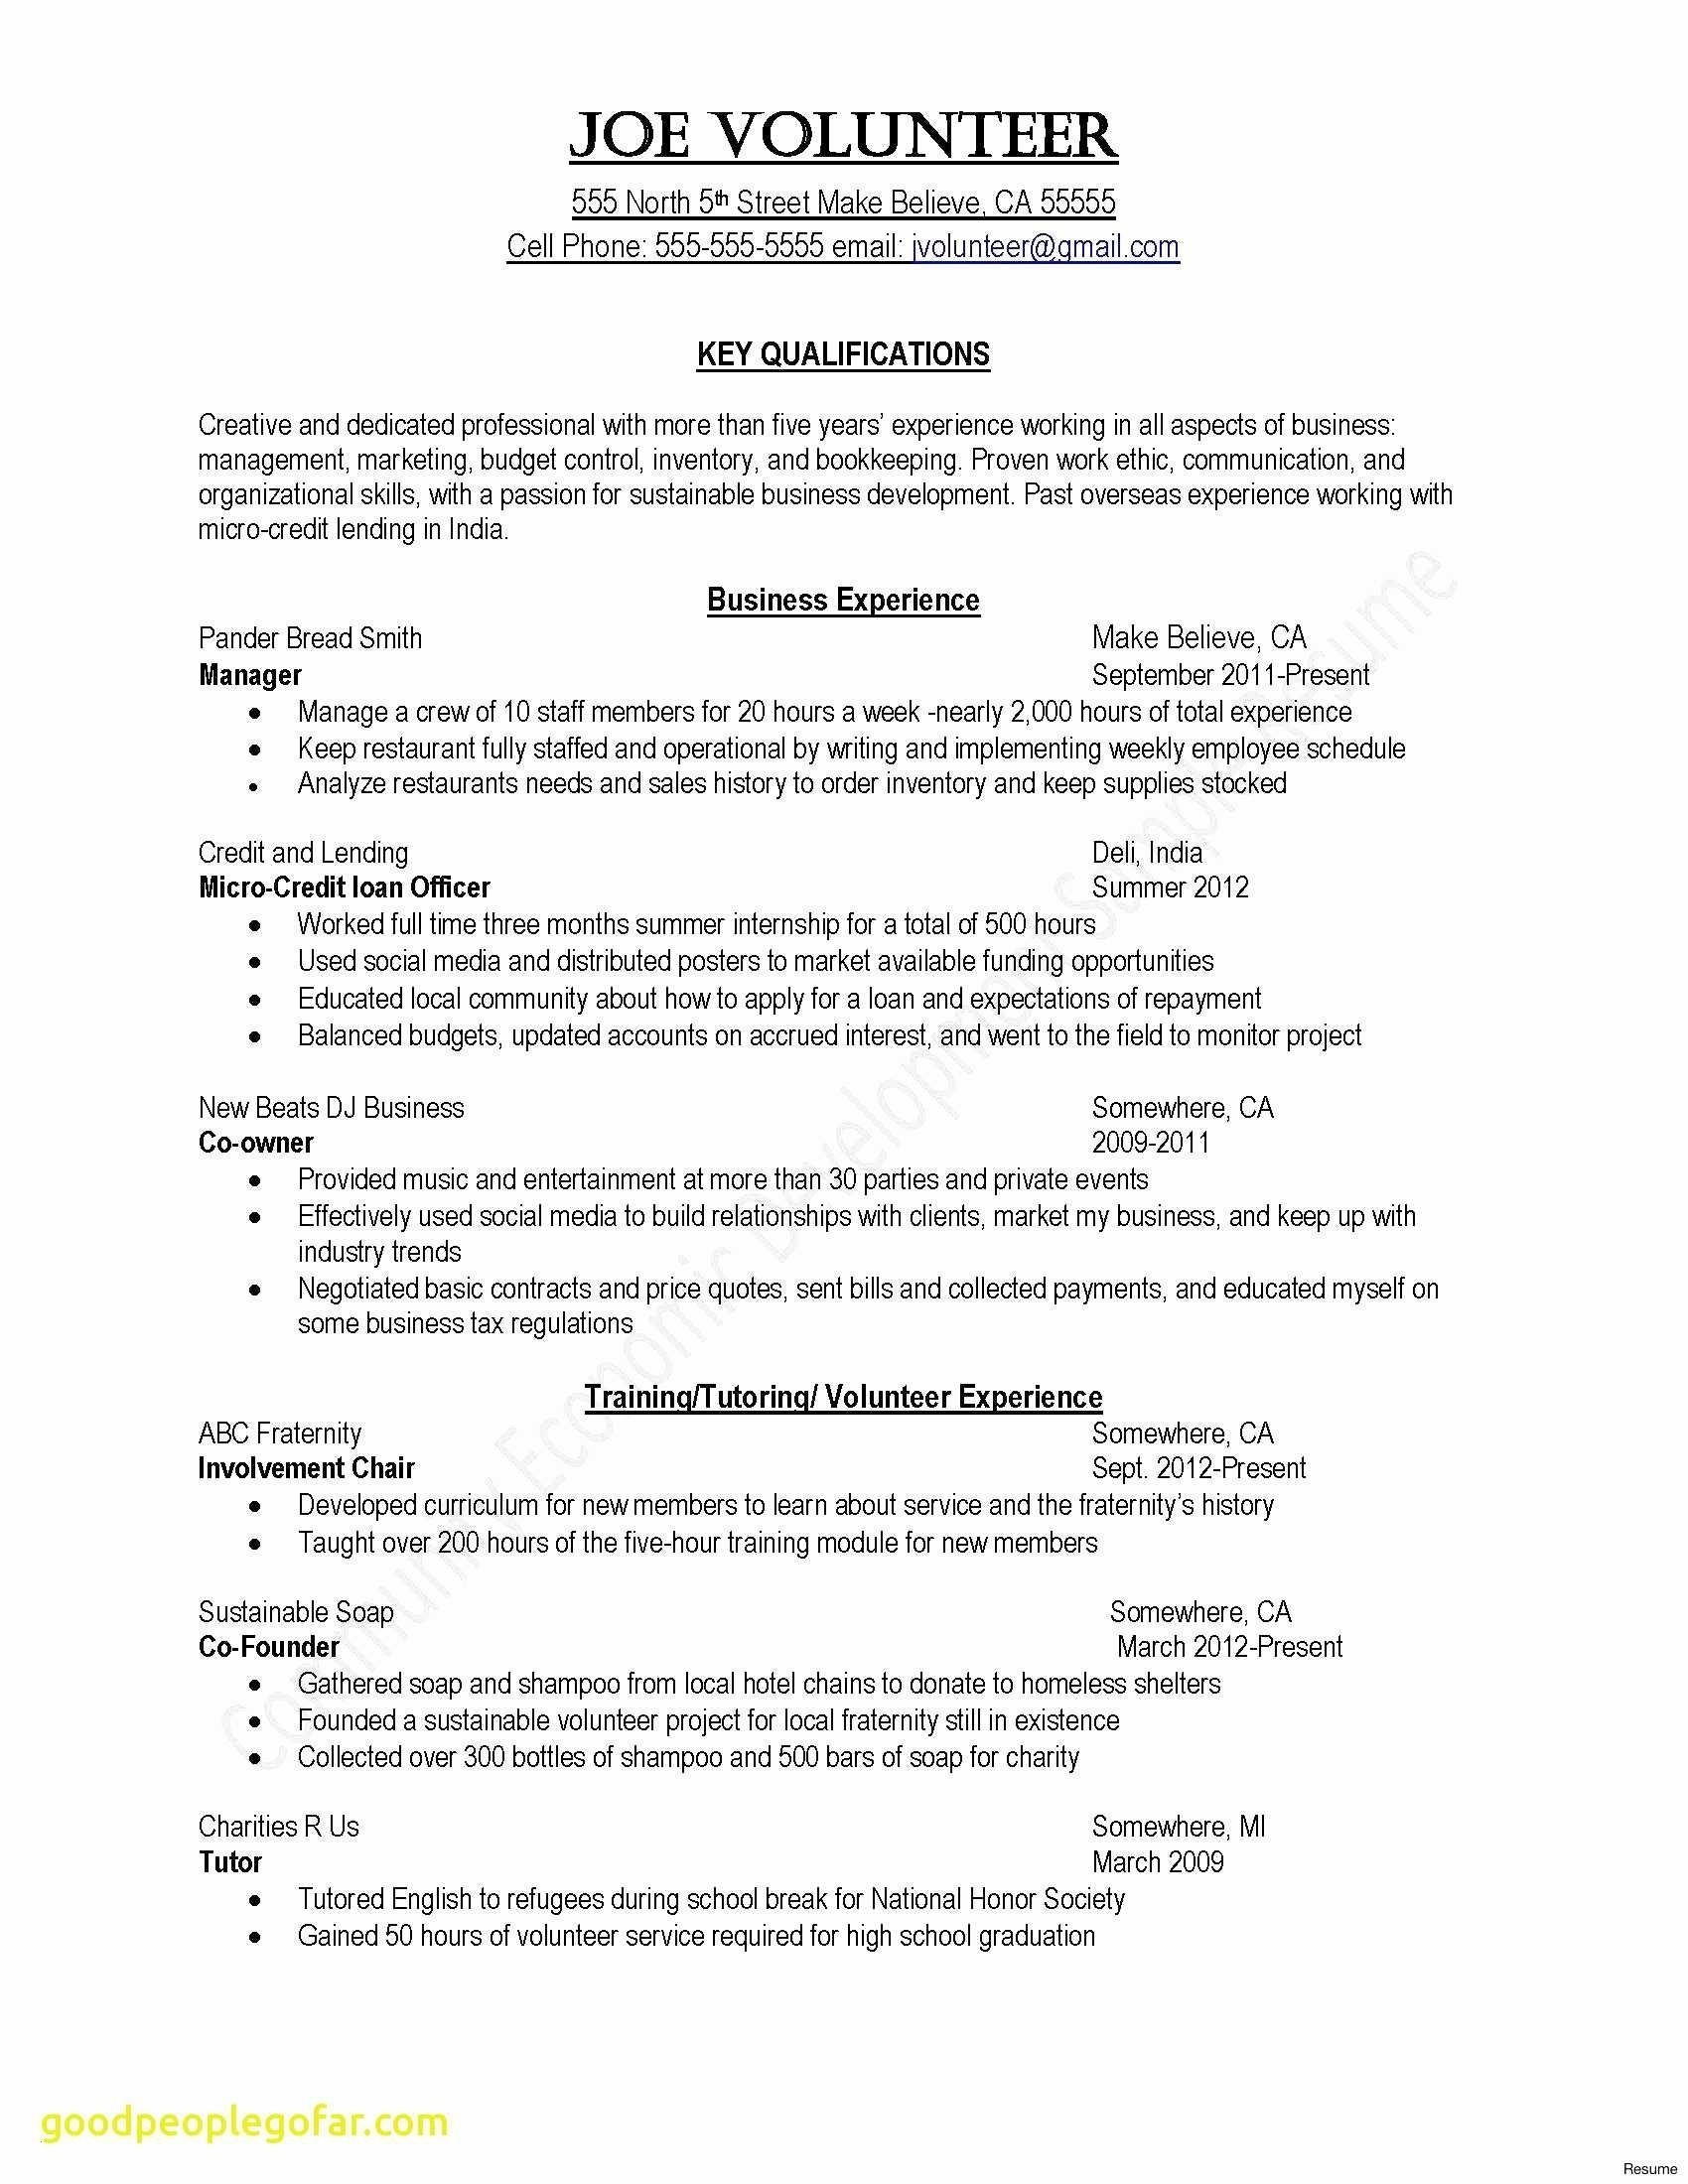 mental health counselor resume Collection-Mental Health Counselor Resume 25 Mental Health Counselor Resume 20-e